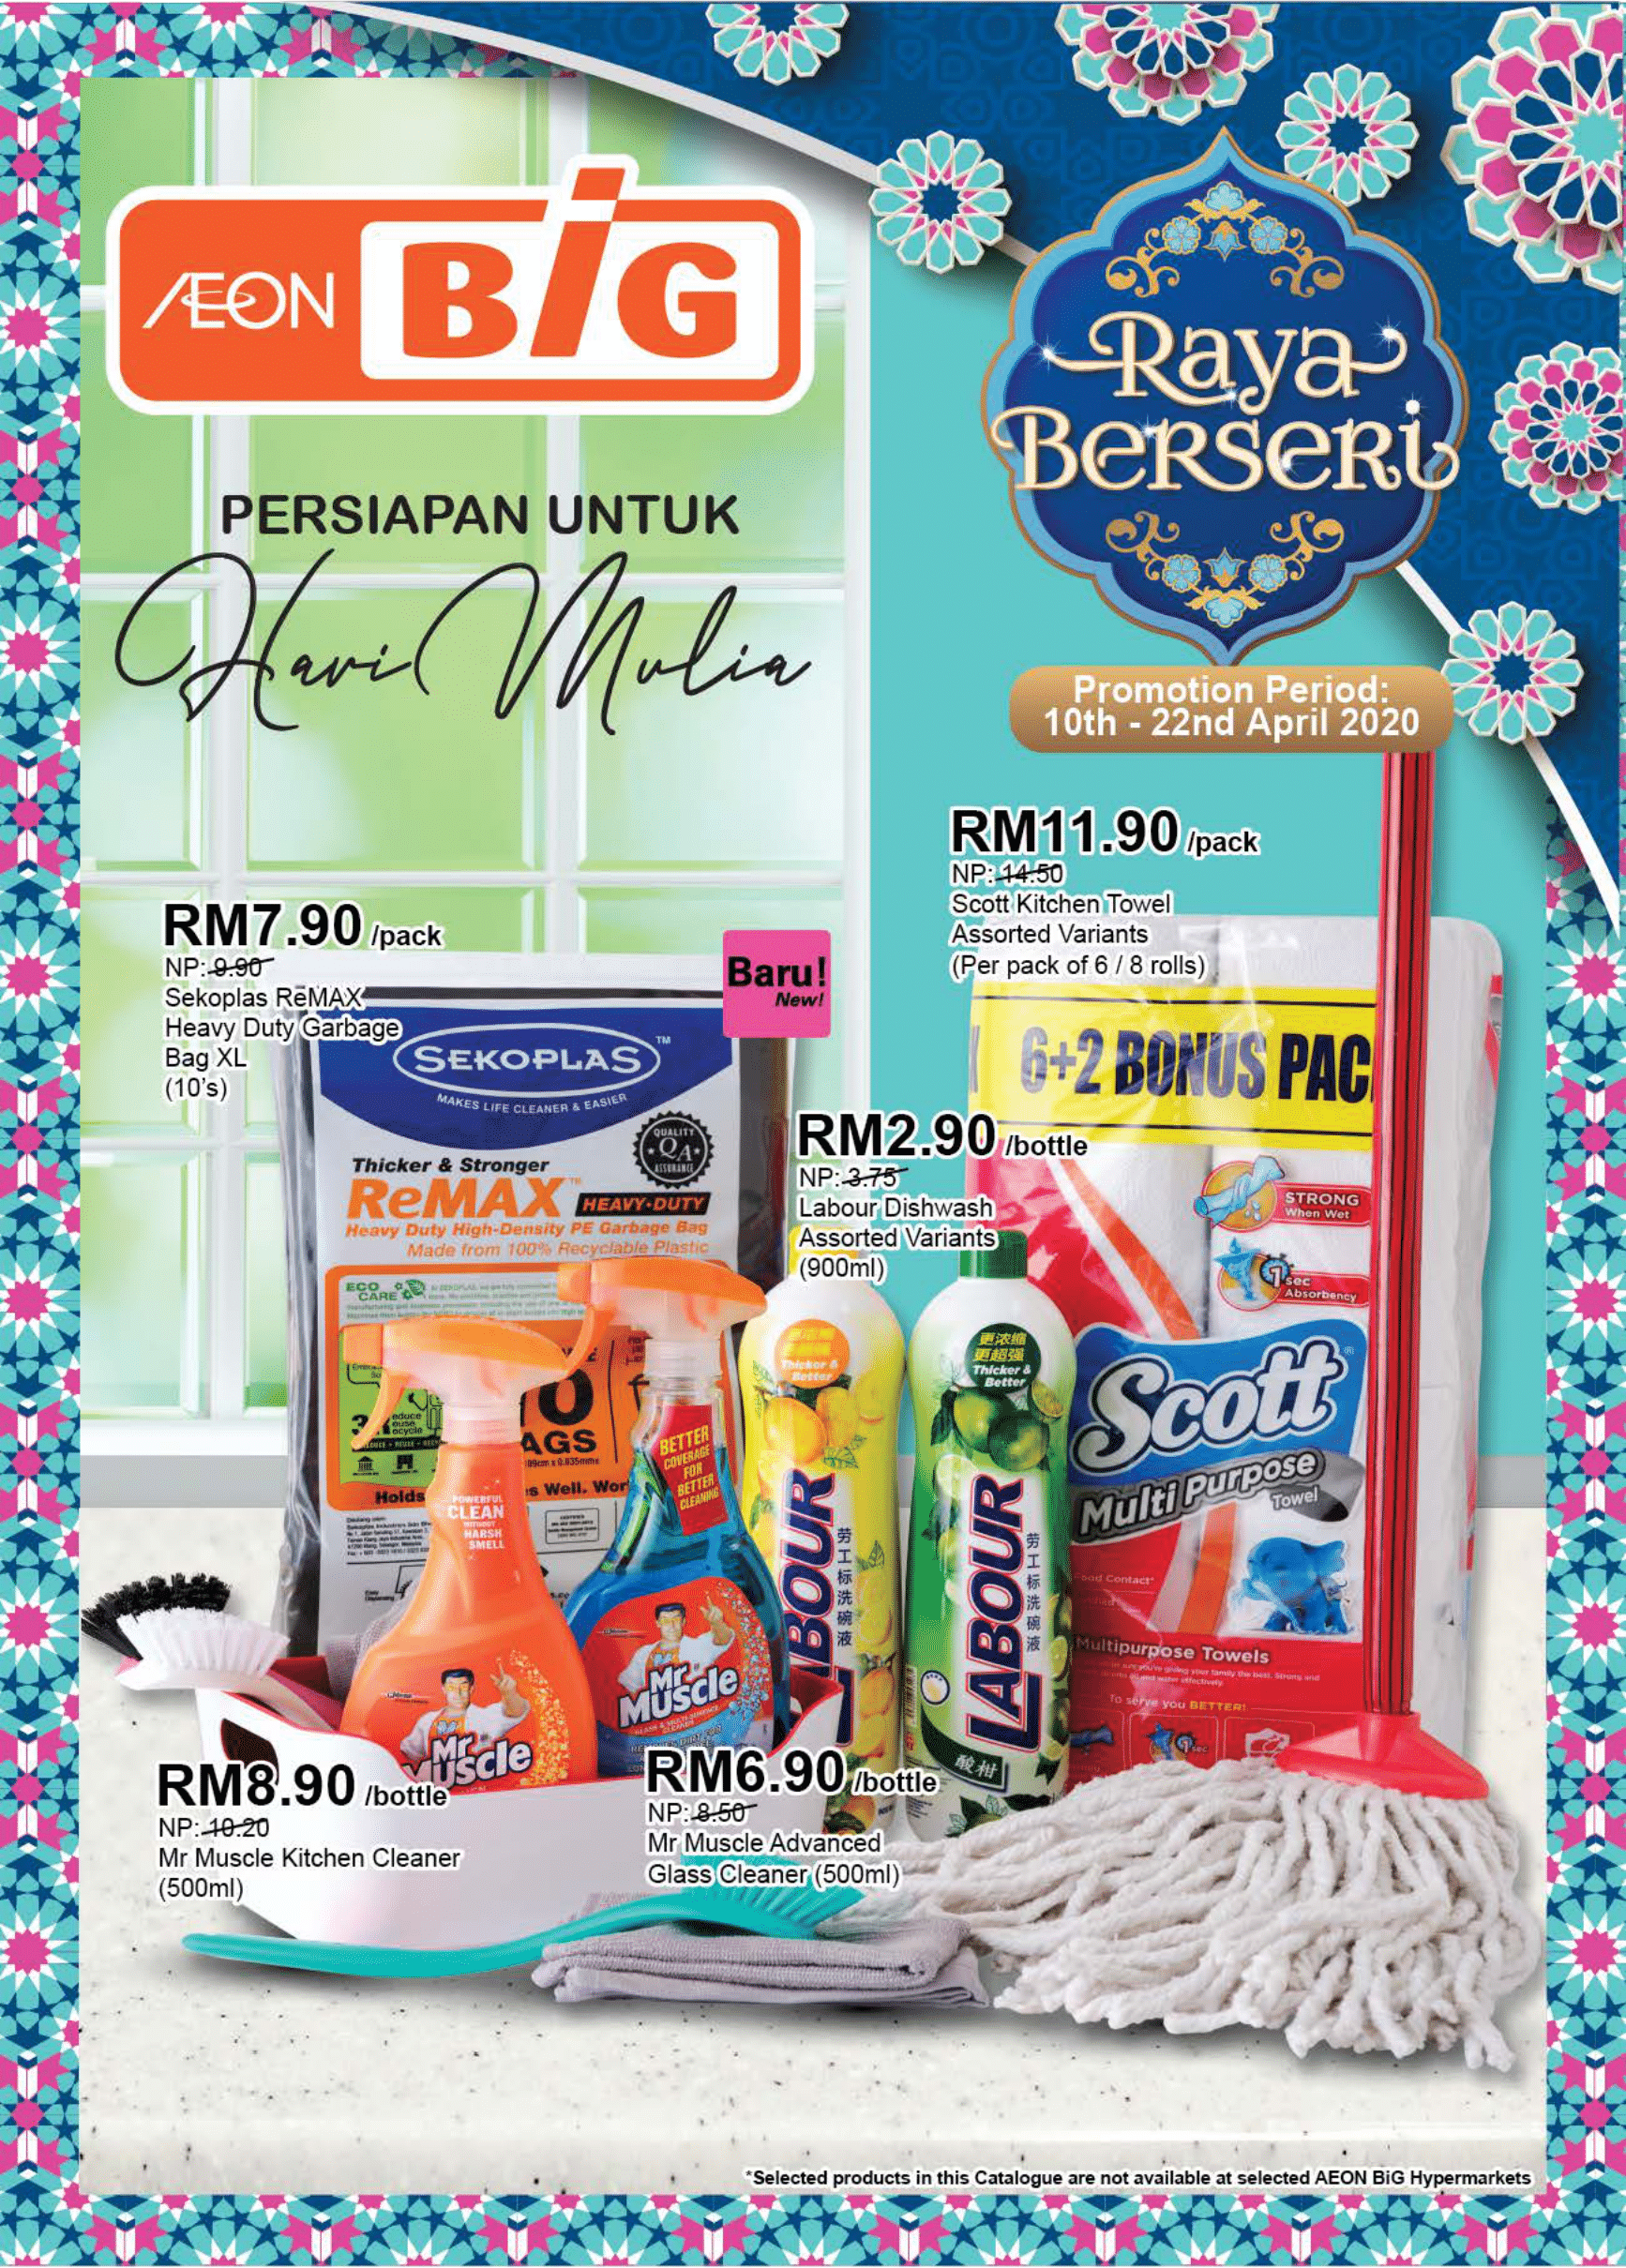 AEON BiG Promotion Catalogue from 10 April 2020 until 22 April 2020